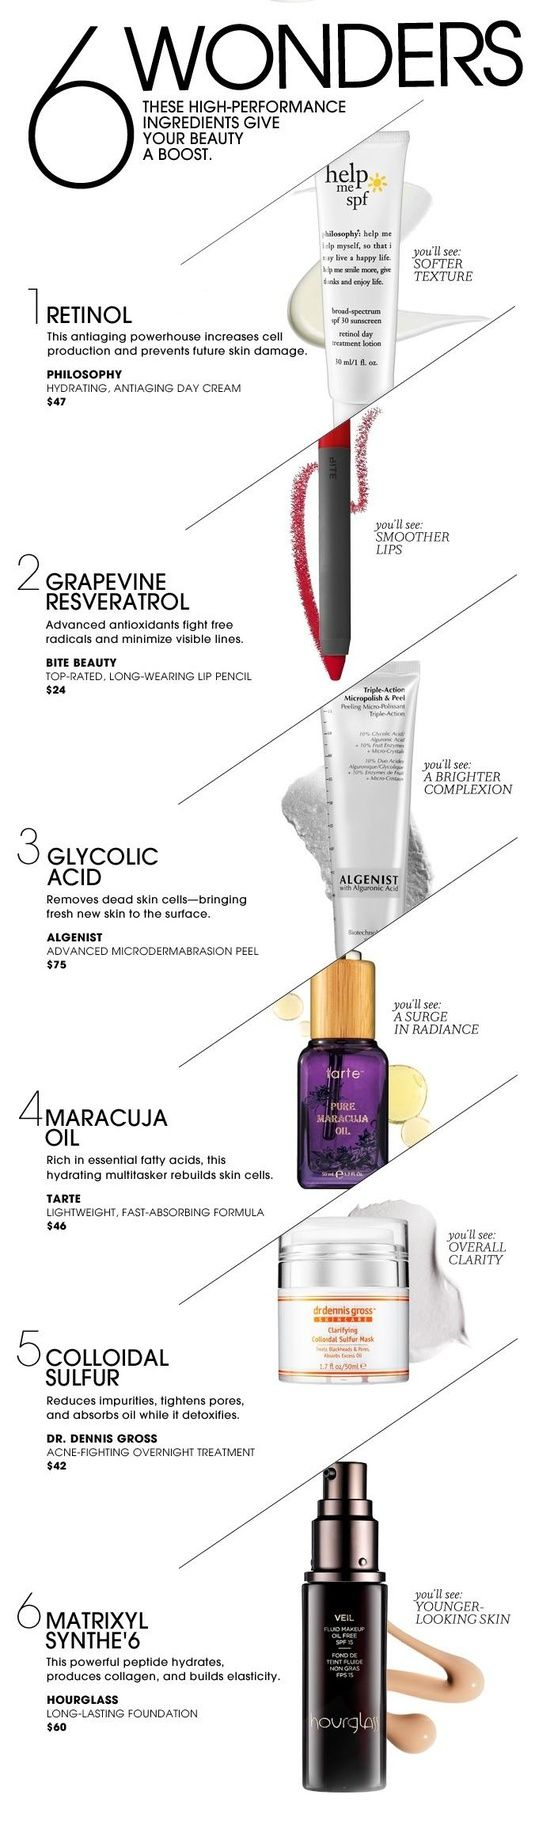 sephora ingredients email